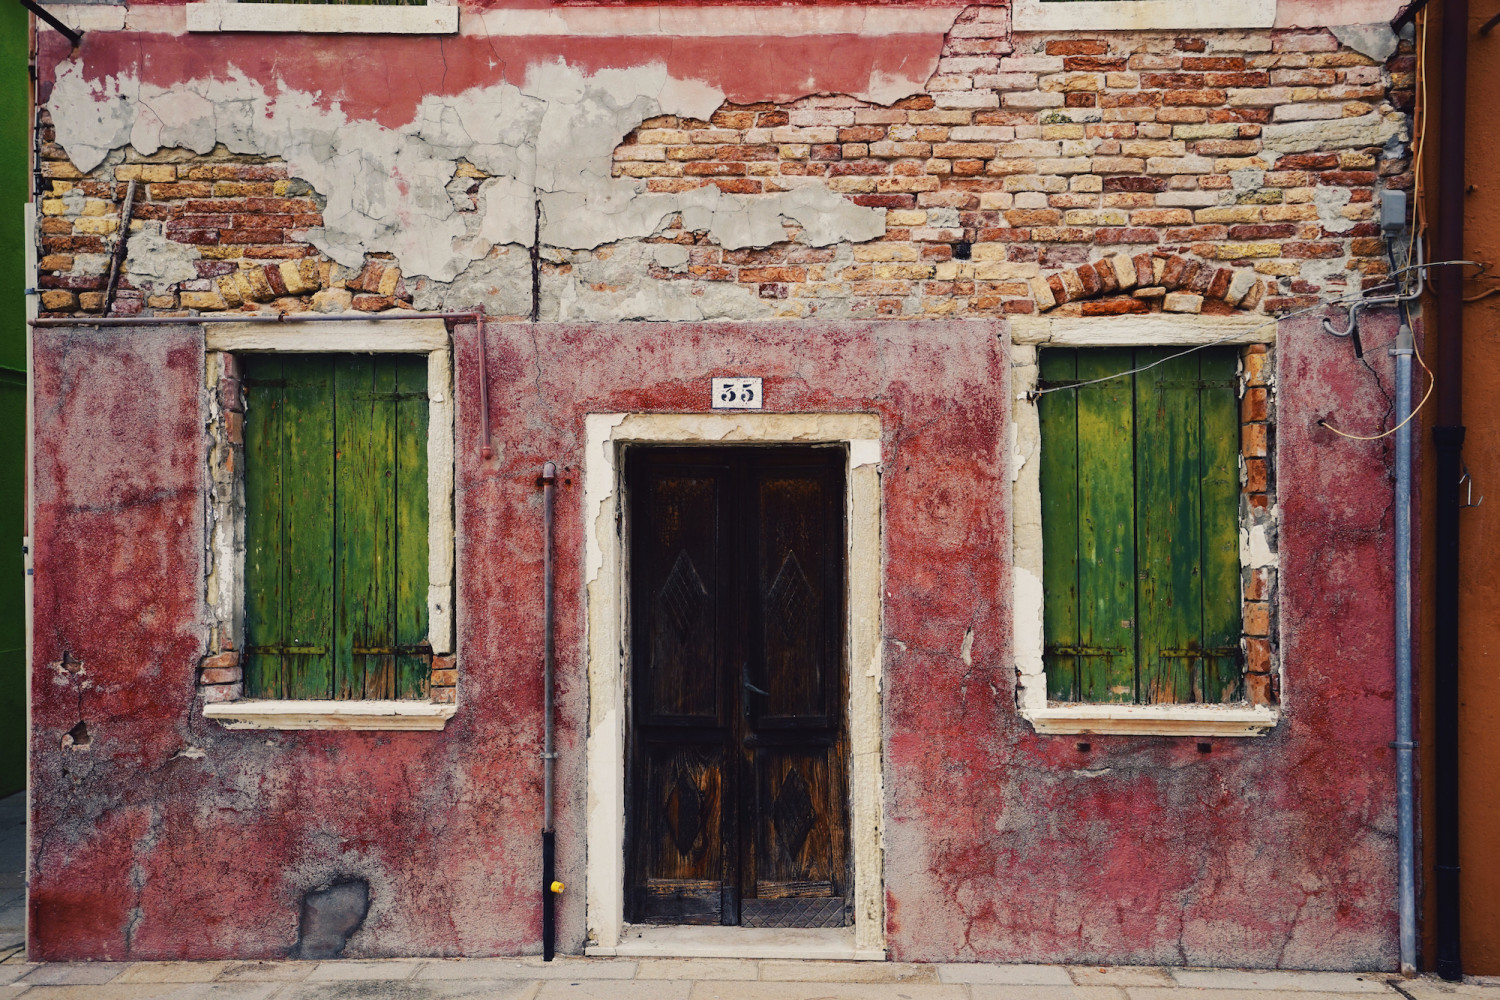 burano-red-and-brick-dante-vincent-photography